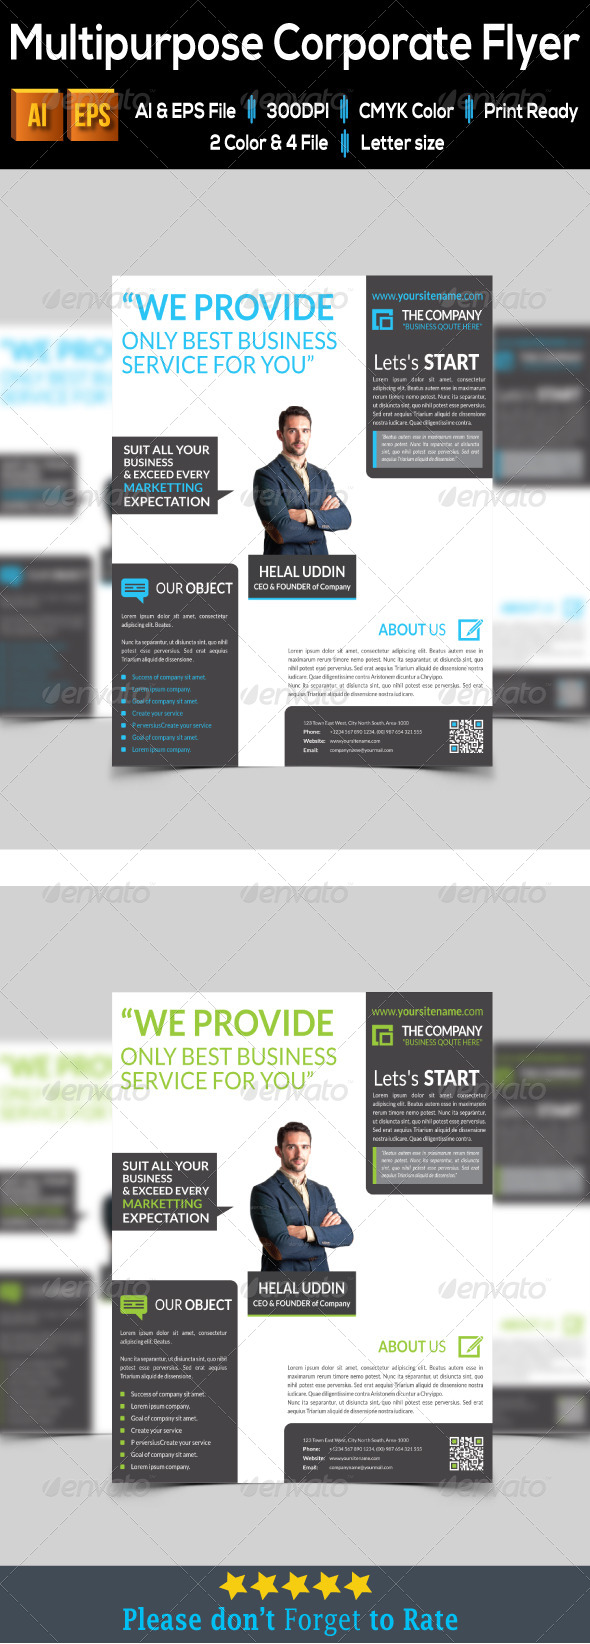 GraphicRiver Multipurpose Corporate Flyer 7948871